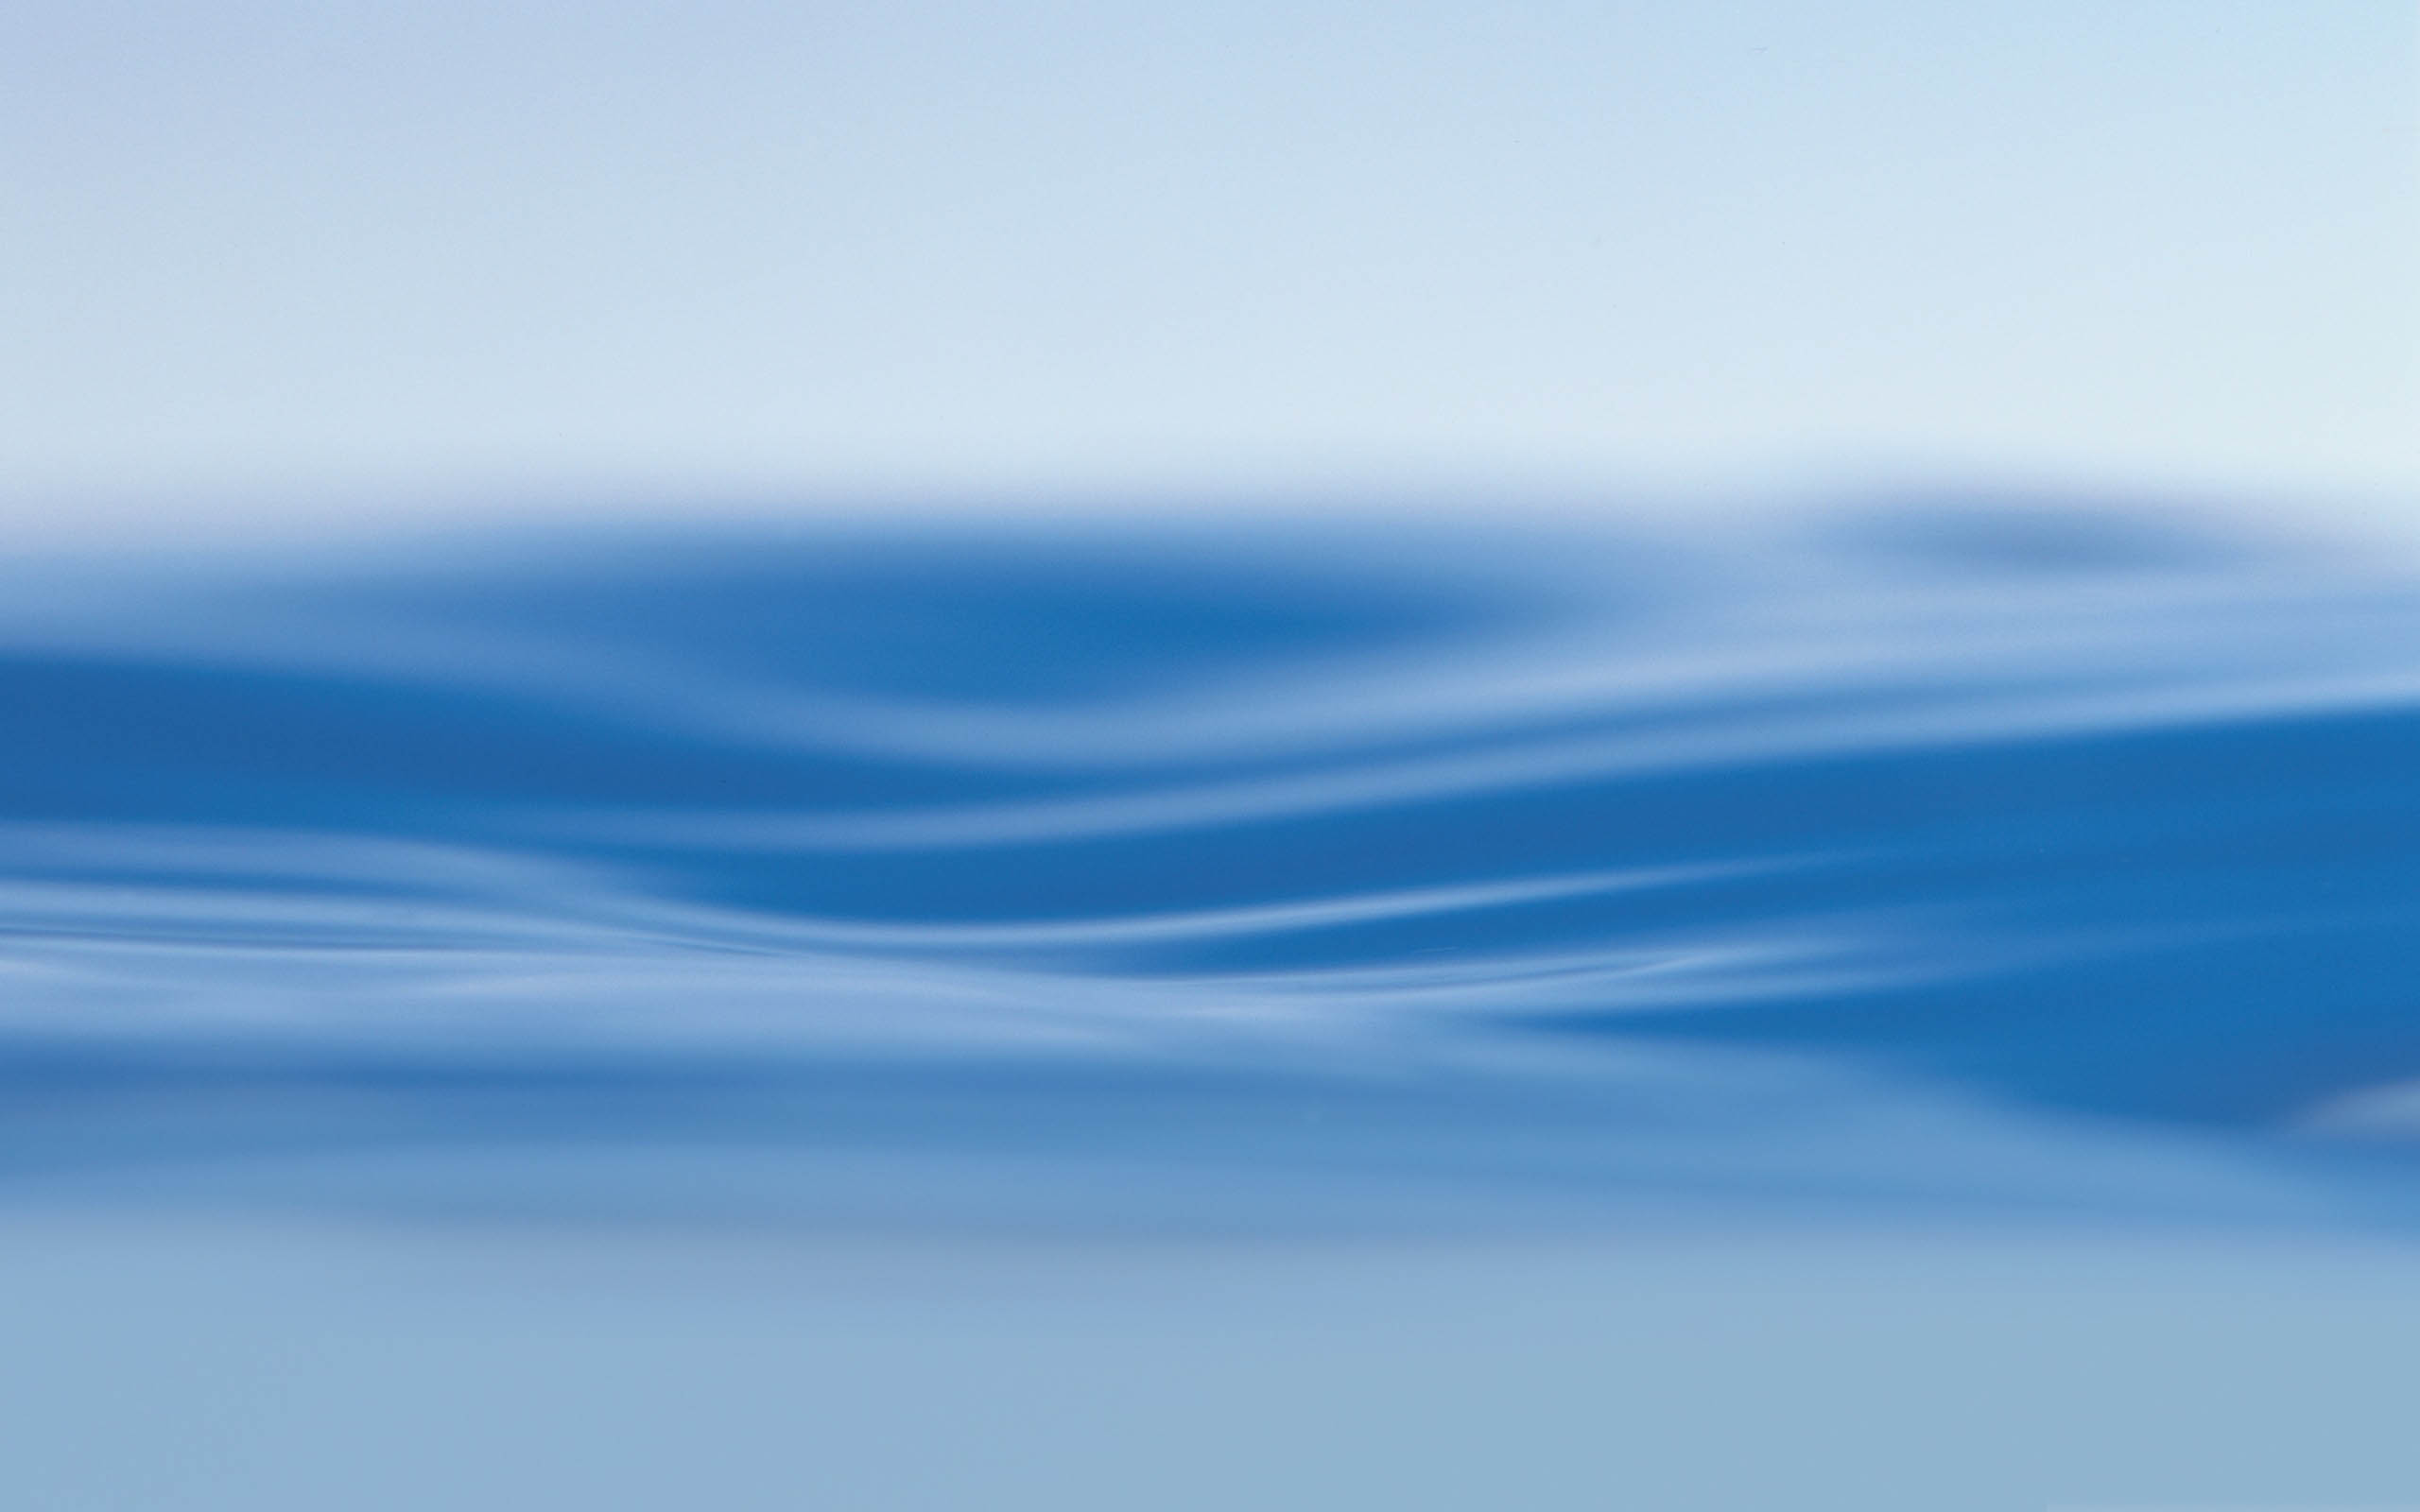 blue surface wallpaper 25643